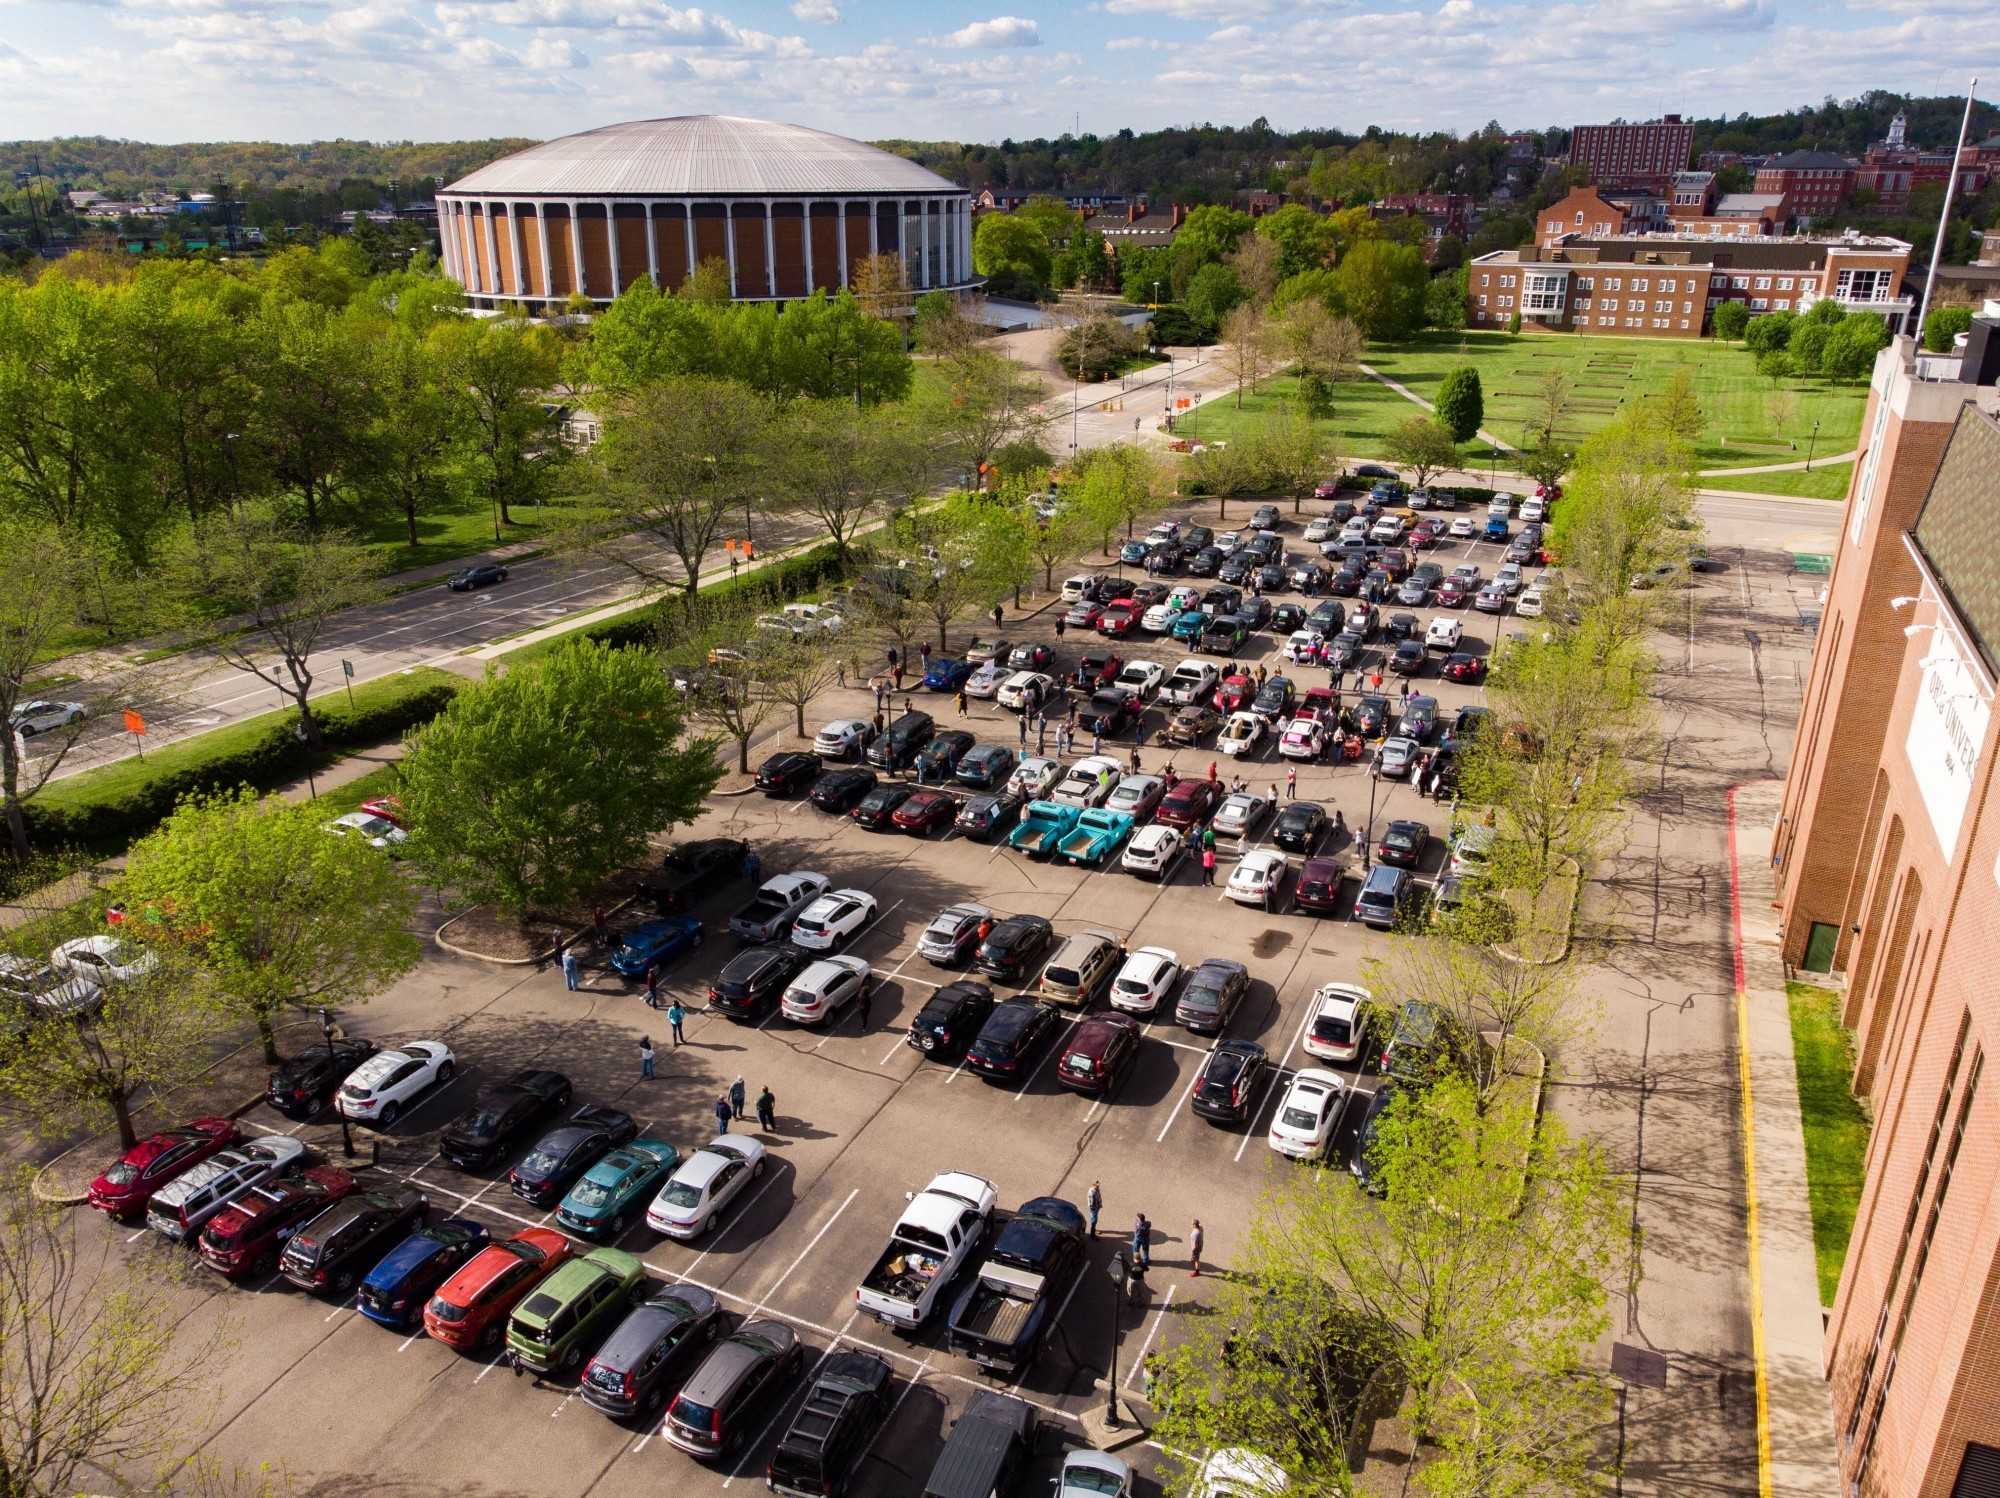 Approximately 200 people rallied in their vehicles outside Peden Stadium in protest of Ohio University laying off 140 union employees on Wednesday, May 6, 2020. (Kevin Pan | For The Post).